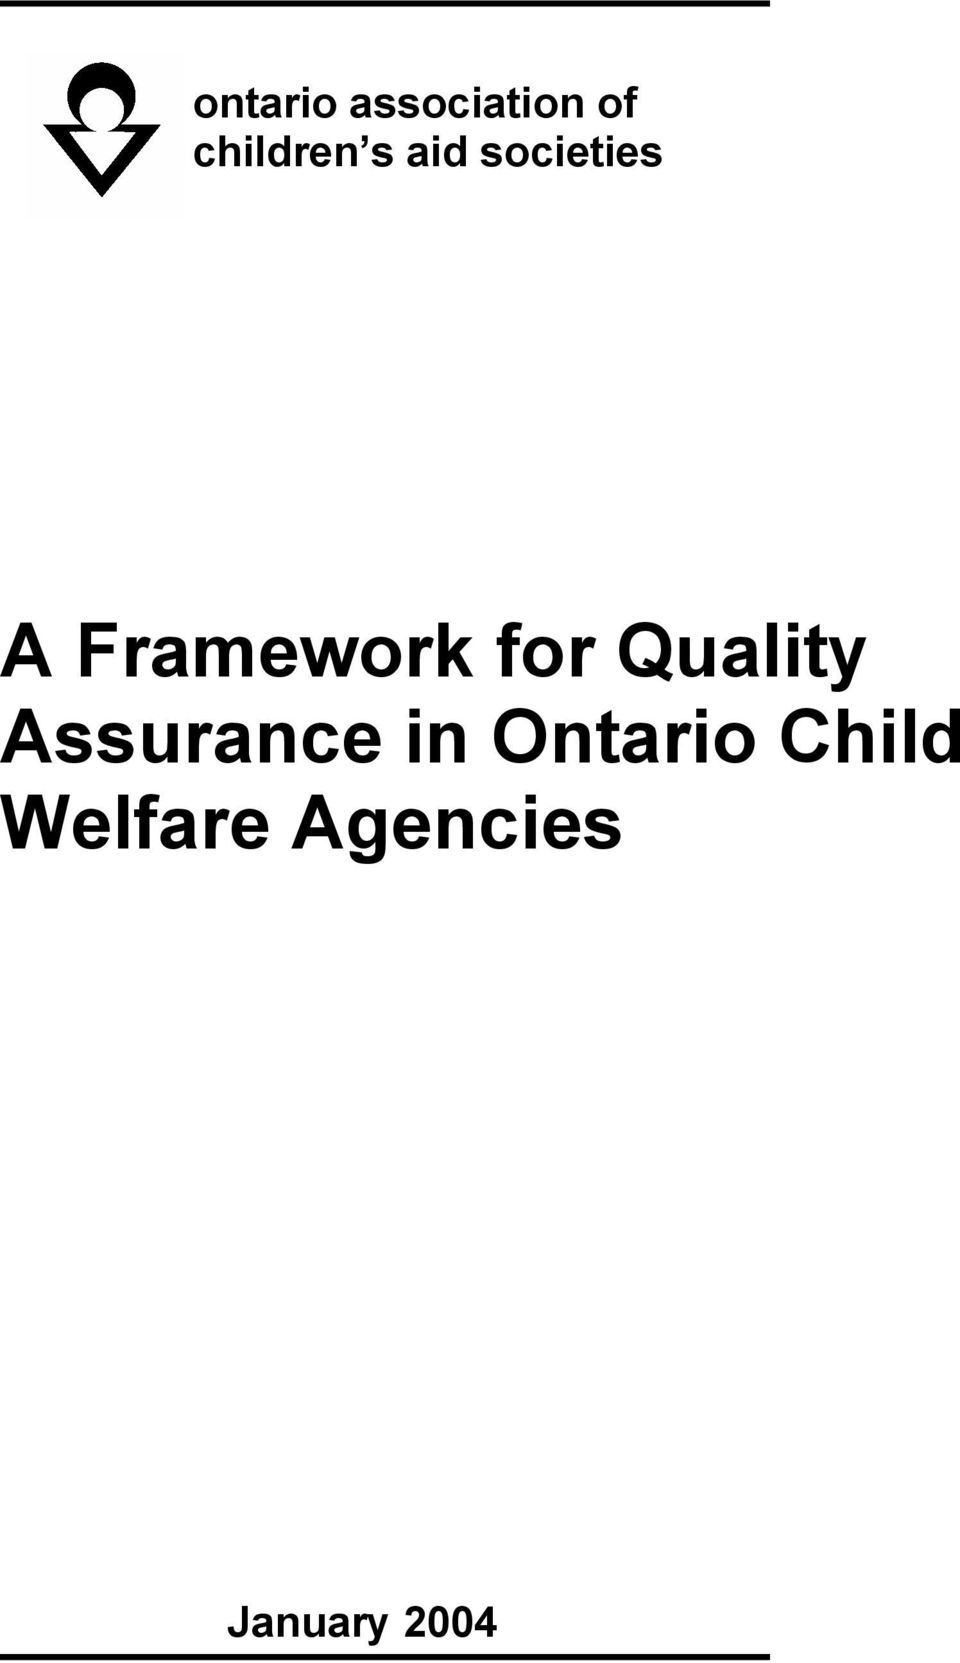 Assurance in Ontario